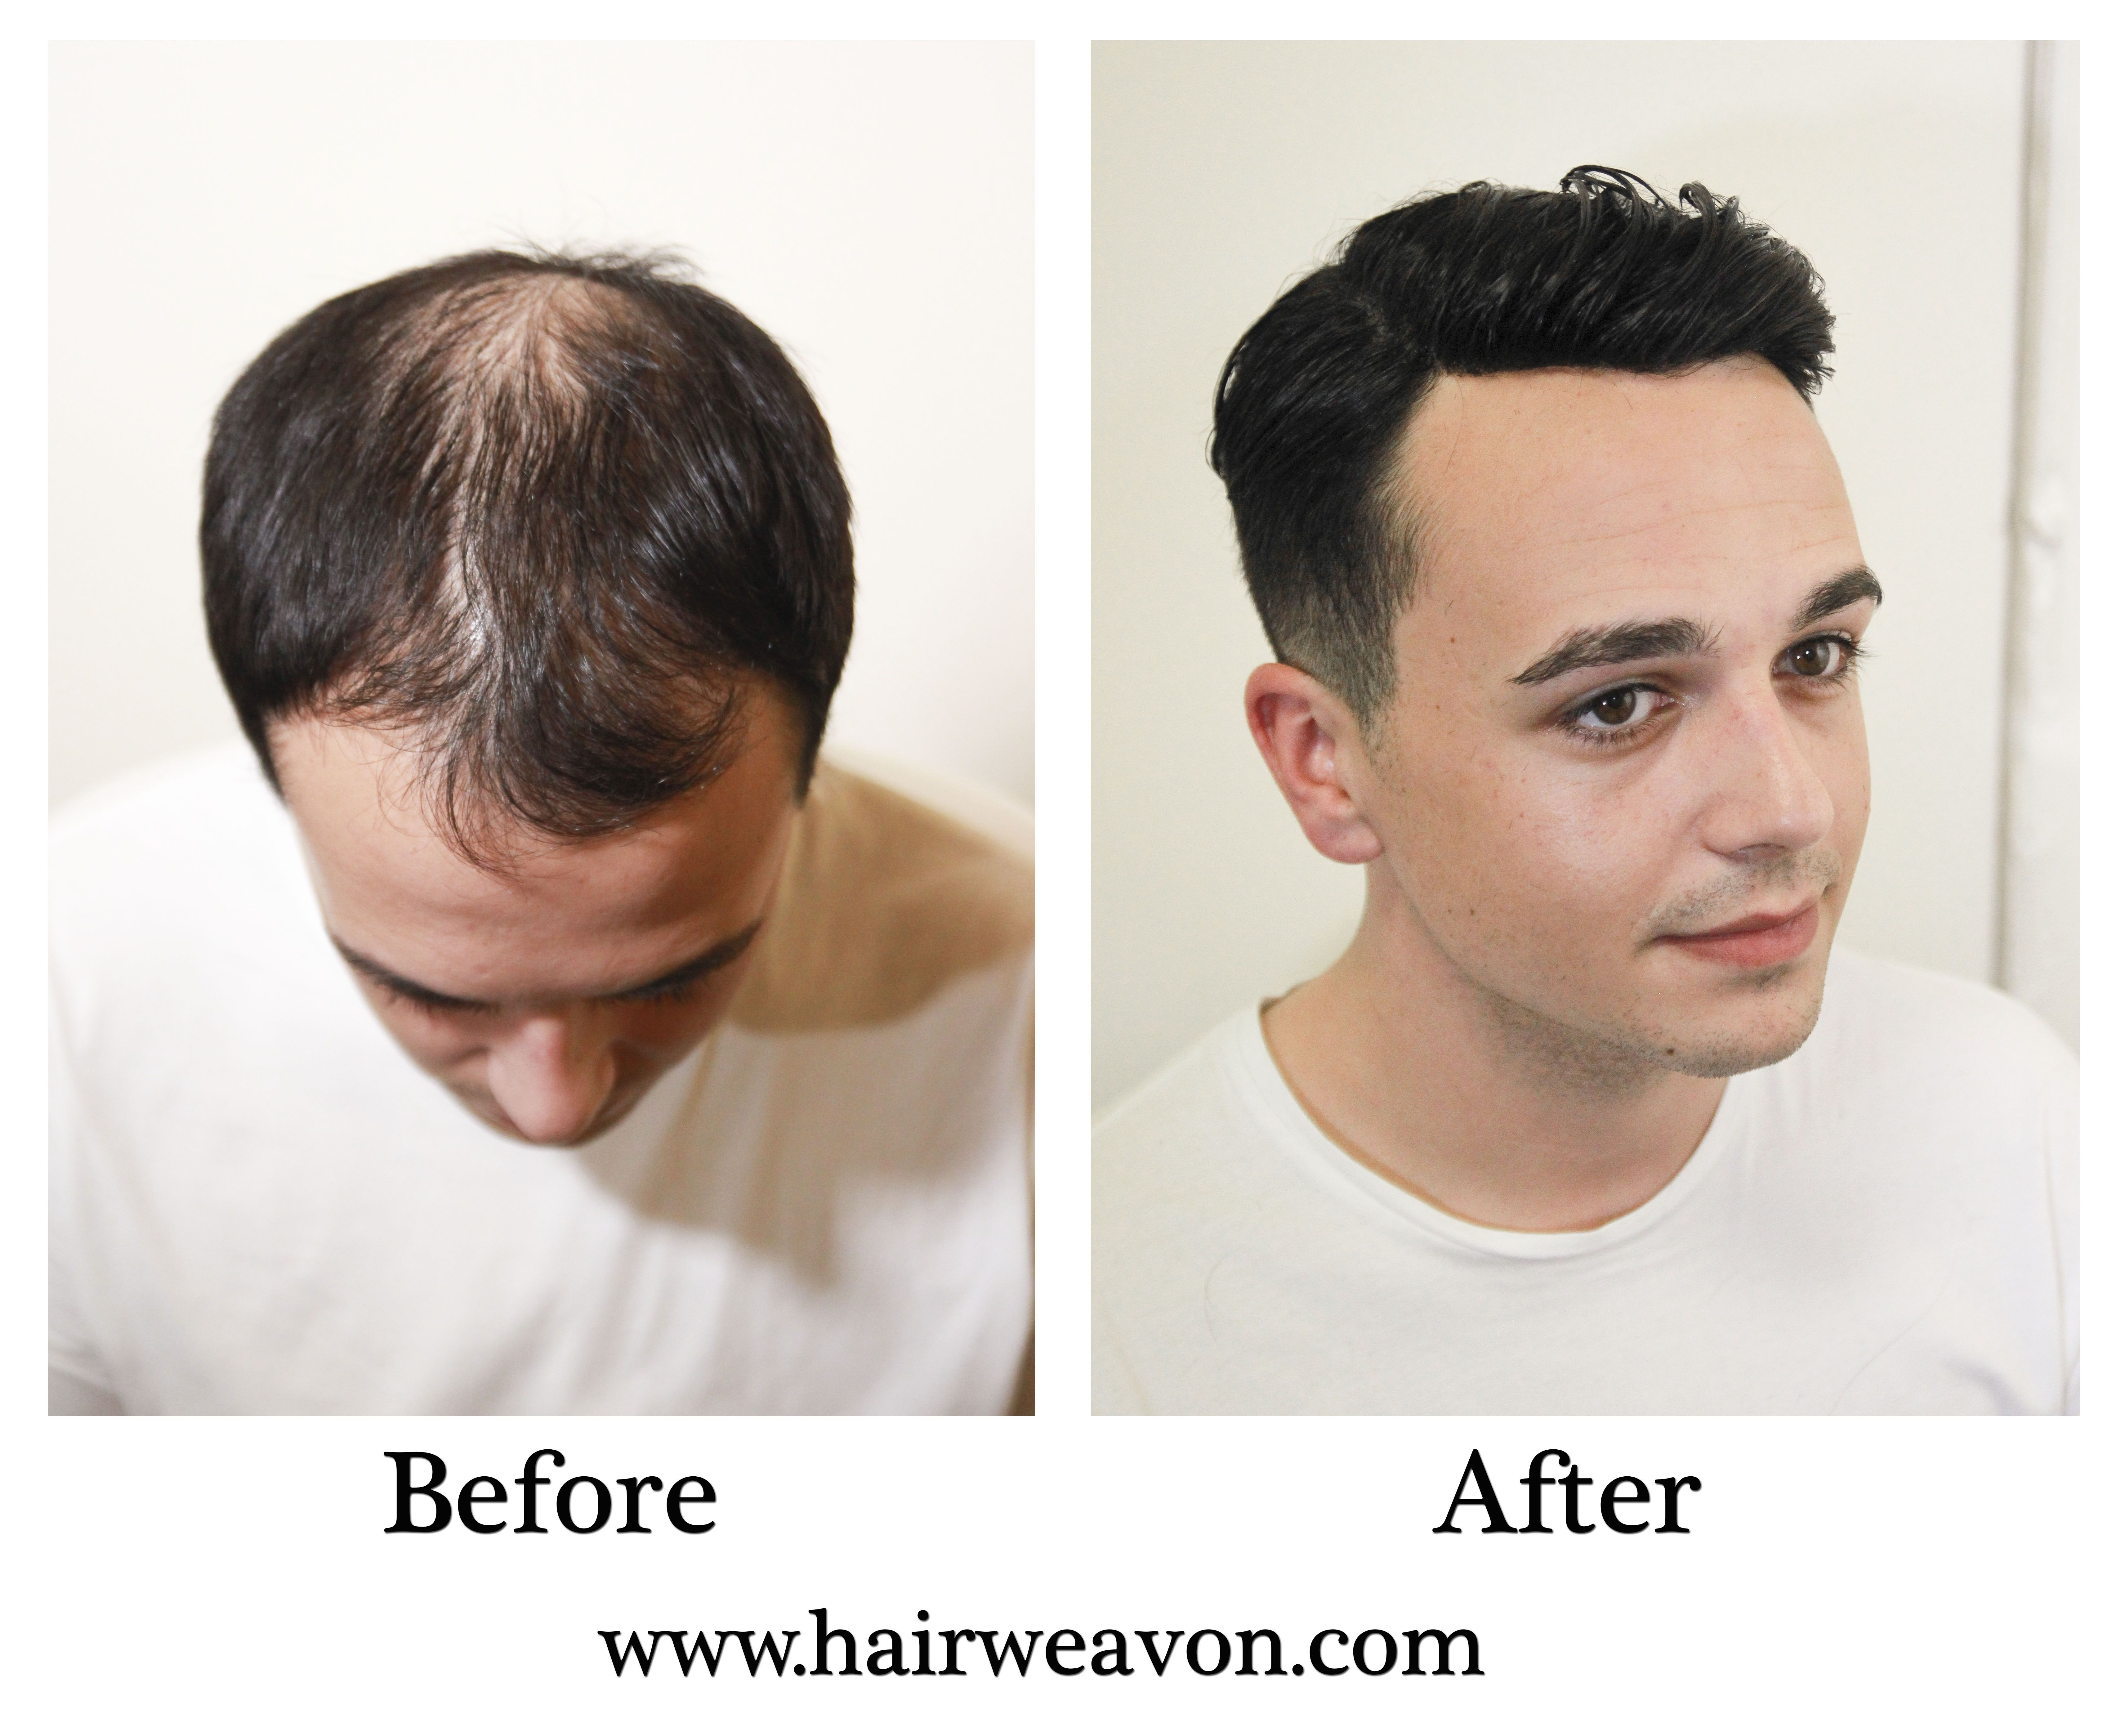 pin by hairweavon on mens hair replacement | pinterest | wig